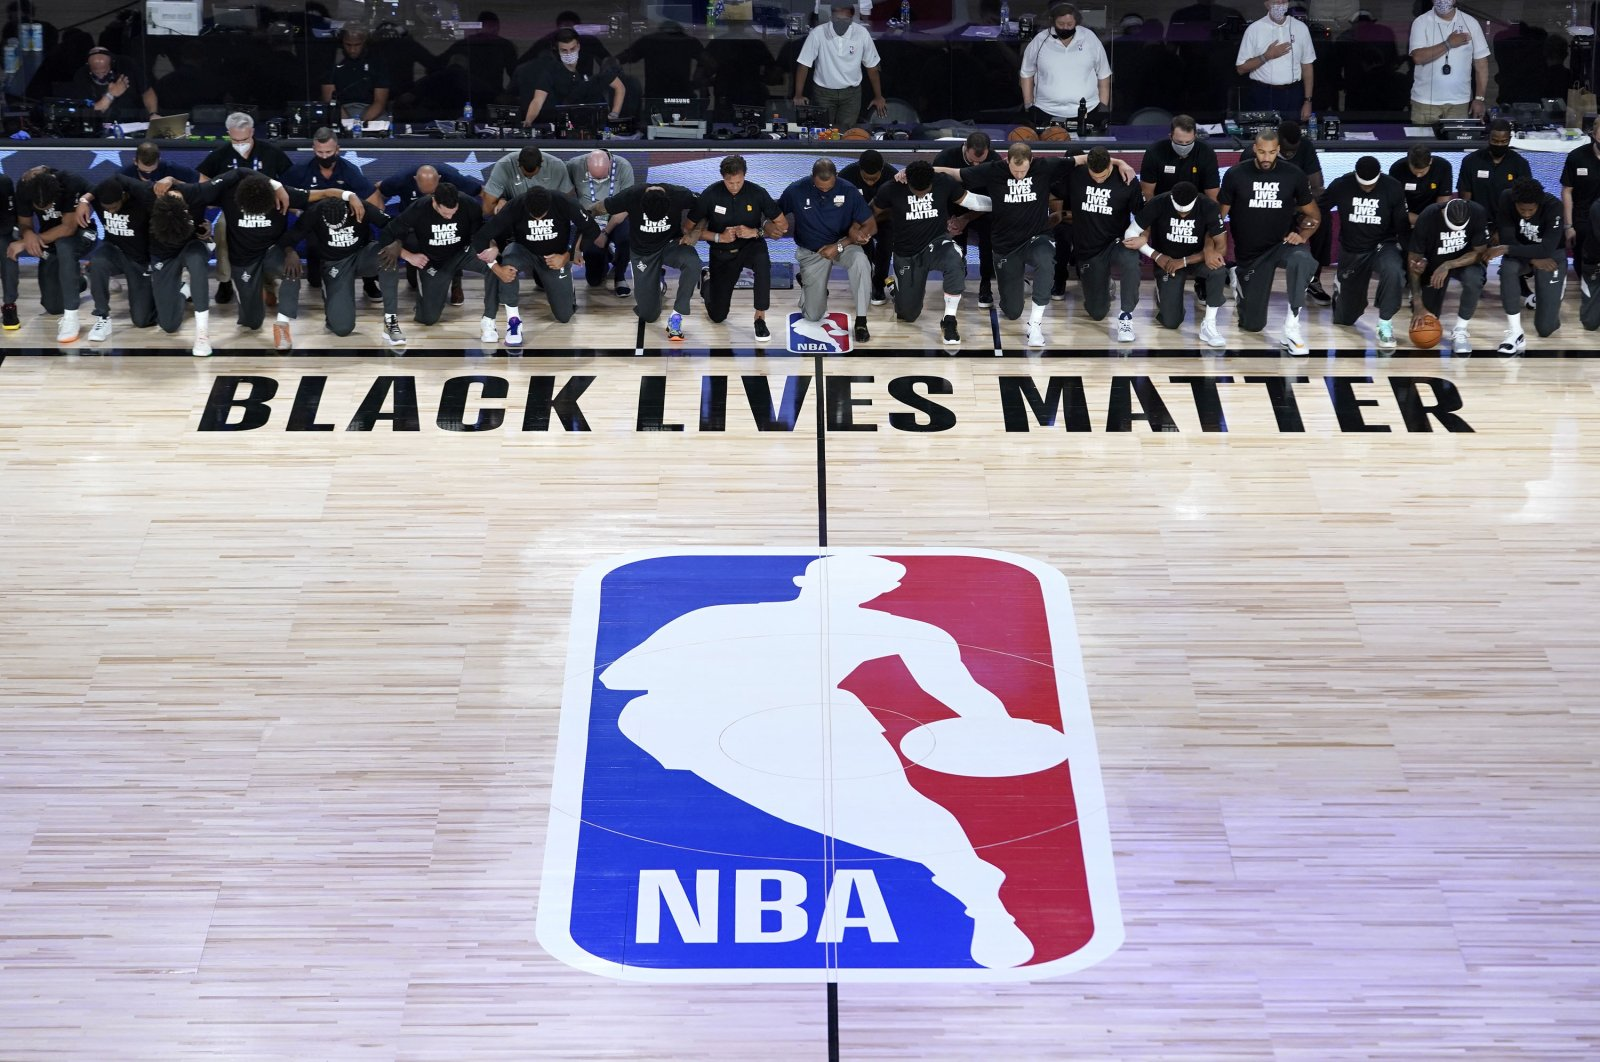 New Orleans Pelicans and Utah Jazz players kneel together around the Black Lives Matter and the NBA logos during the national anthem before the start of a game,Lake Buena Vista, U.S., July 30, 2020. (Reuters Photo)